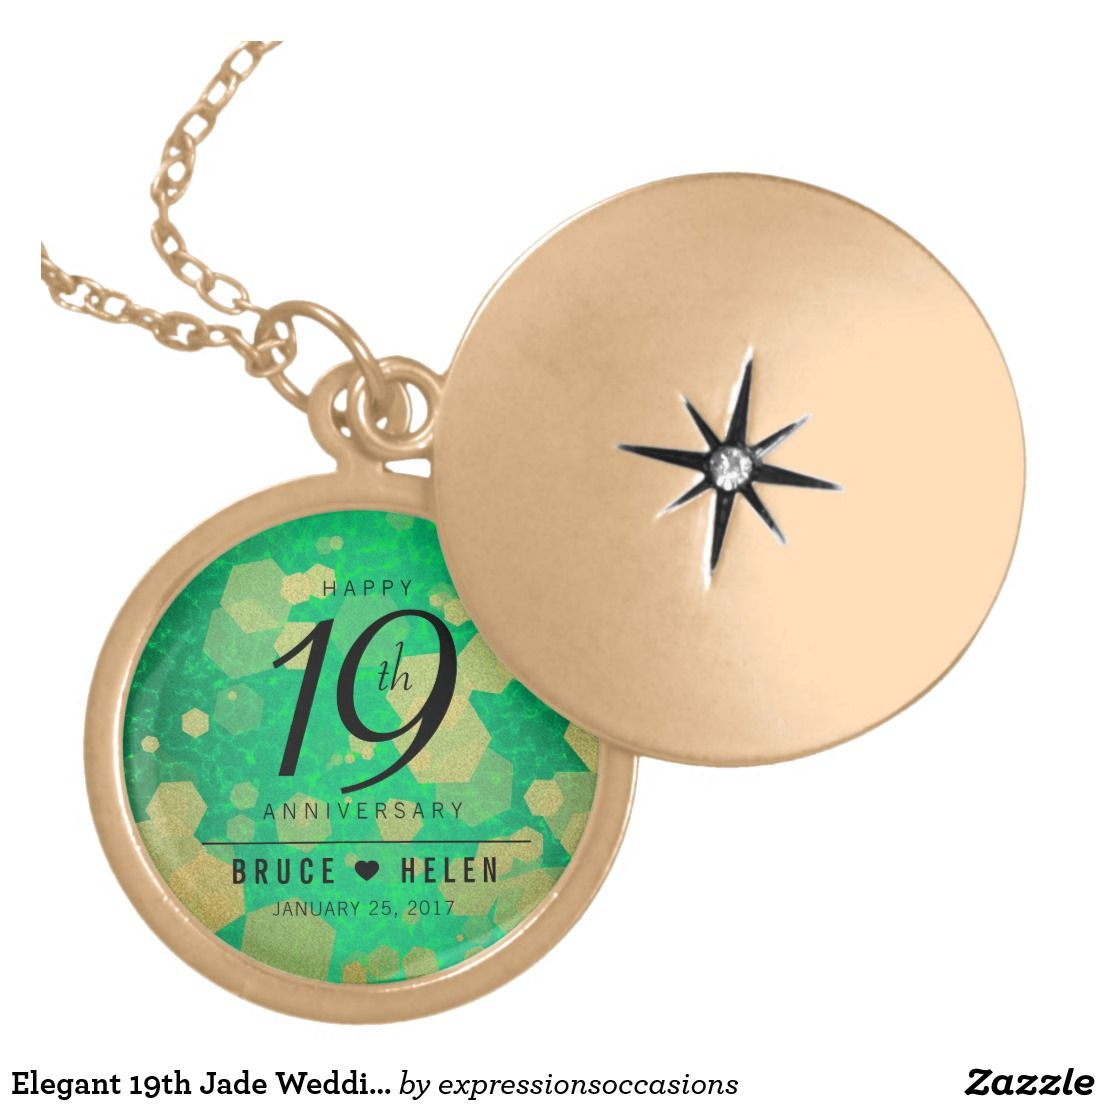 Elegant 19th Jade Wedding Anniversary Celebration Locket